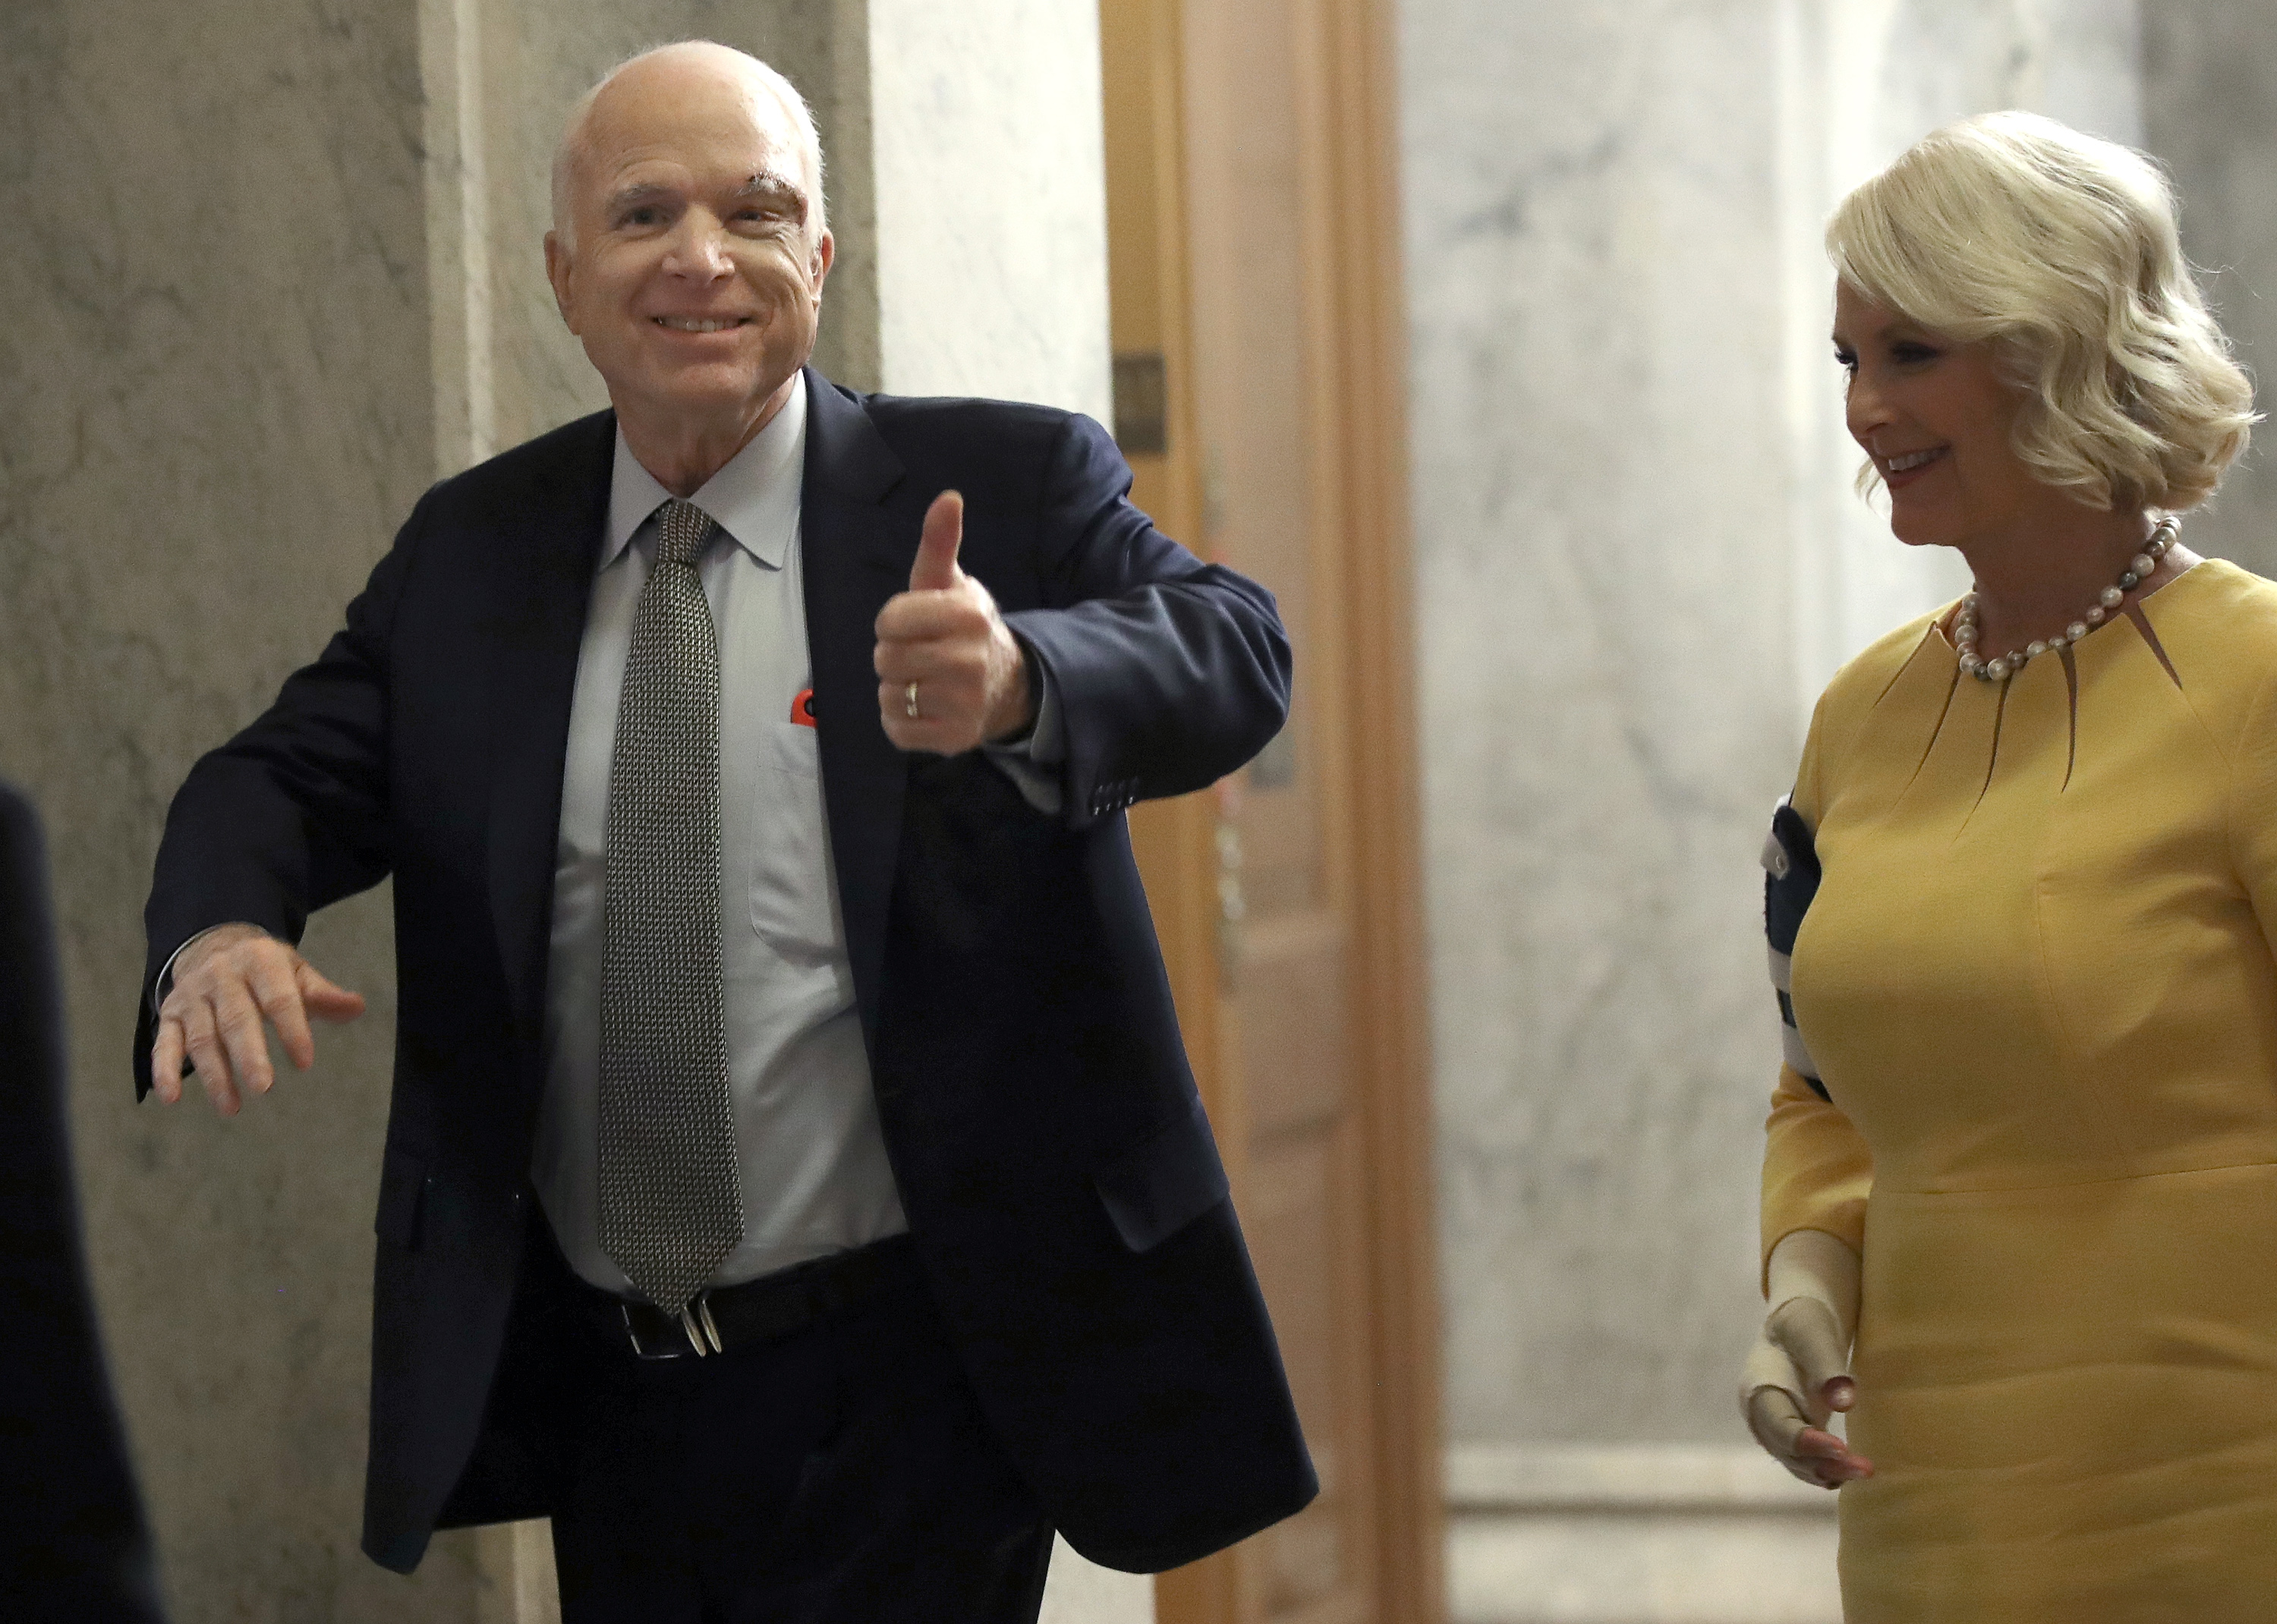 Sen. John McCain returns to the Senate accompanied by his wife Cindy on July 25, 2017, in Washington, D.C. McCain had been diagnosed with brain cancer but returned on the day the Senate held a key procedural vote on U.S. President Donald Trump's effort to repeal and replace the Affordable Care Act. (Win McNamee/Getty Images)